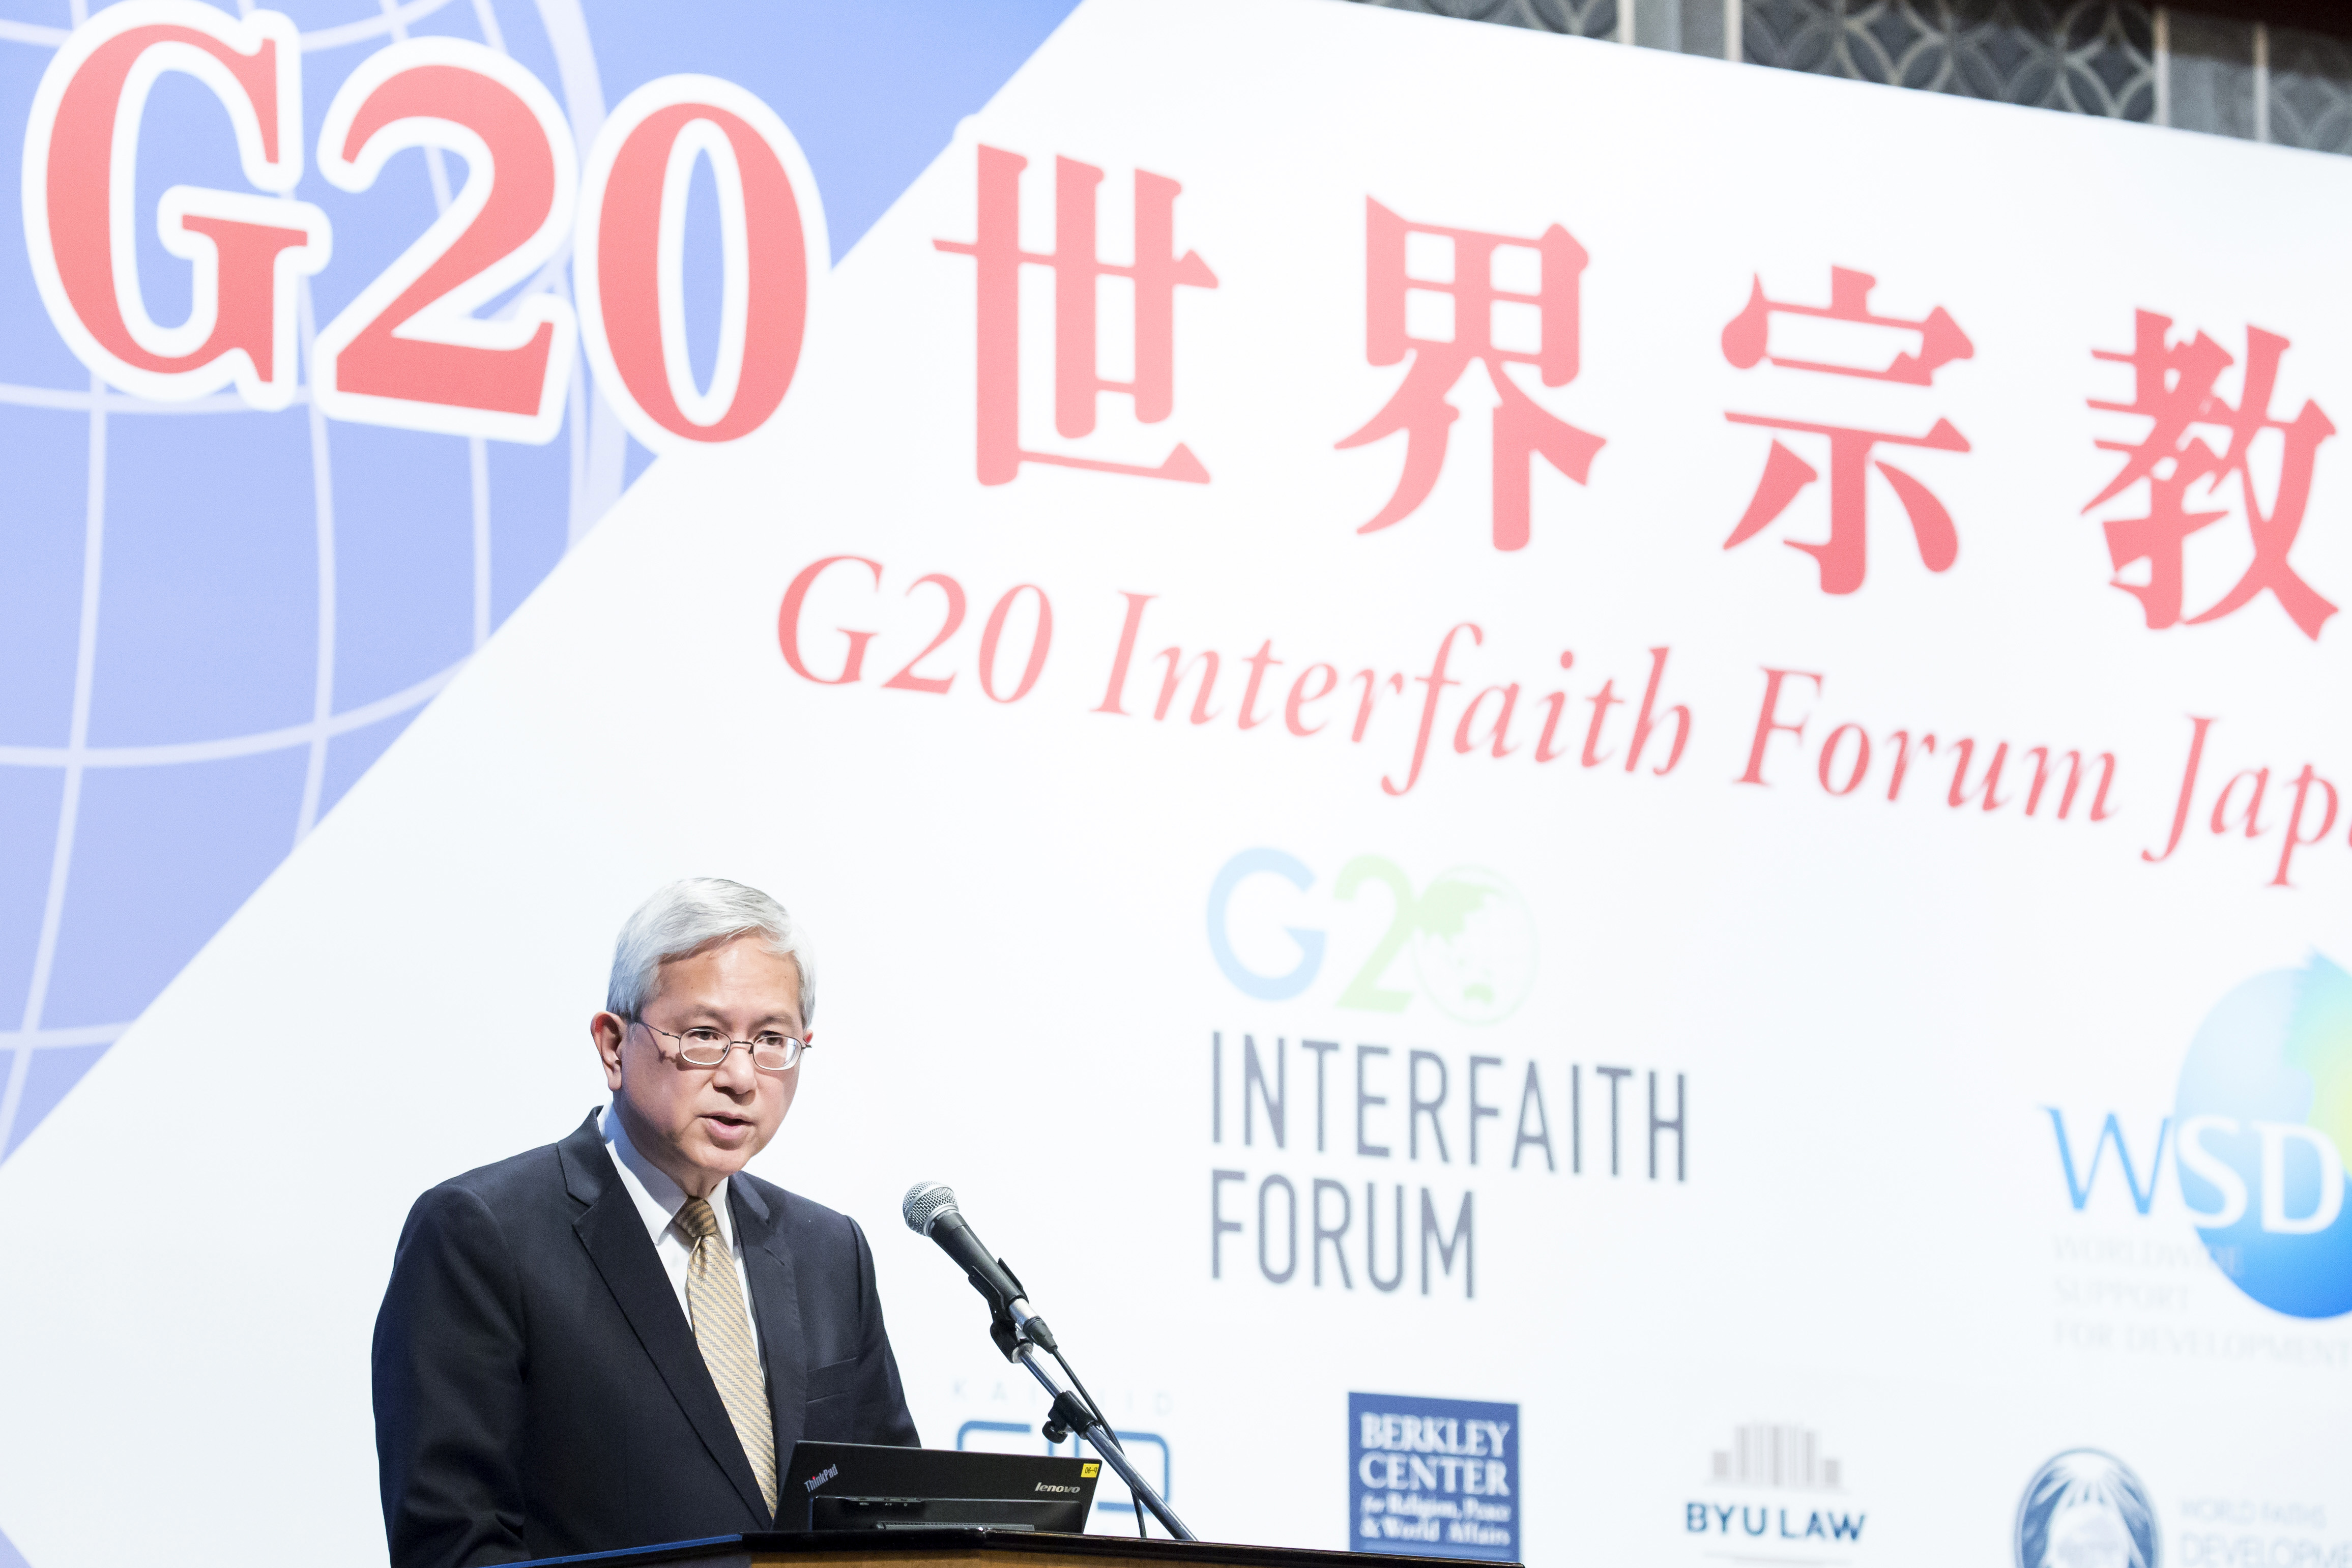 Elder Gerrit W. Gong of the Quorum of the Twelve Apostles of The Church of Jesus Christ of Latter-day Saints, delivers a speech during the G20 Interfaith Forum in Chiba, Japan, on Saturday, June 8, 2019.